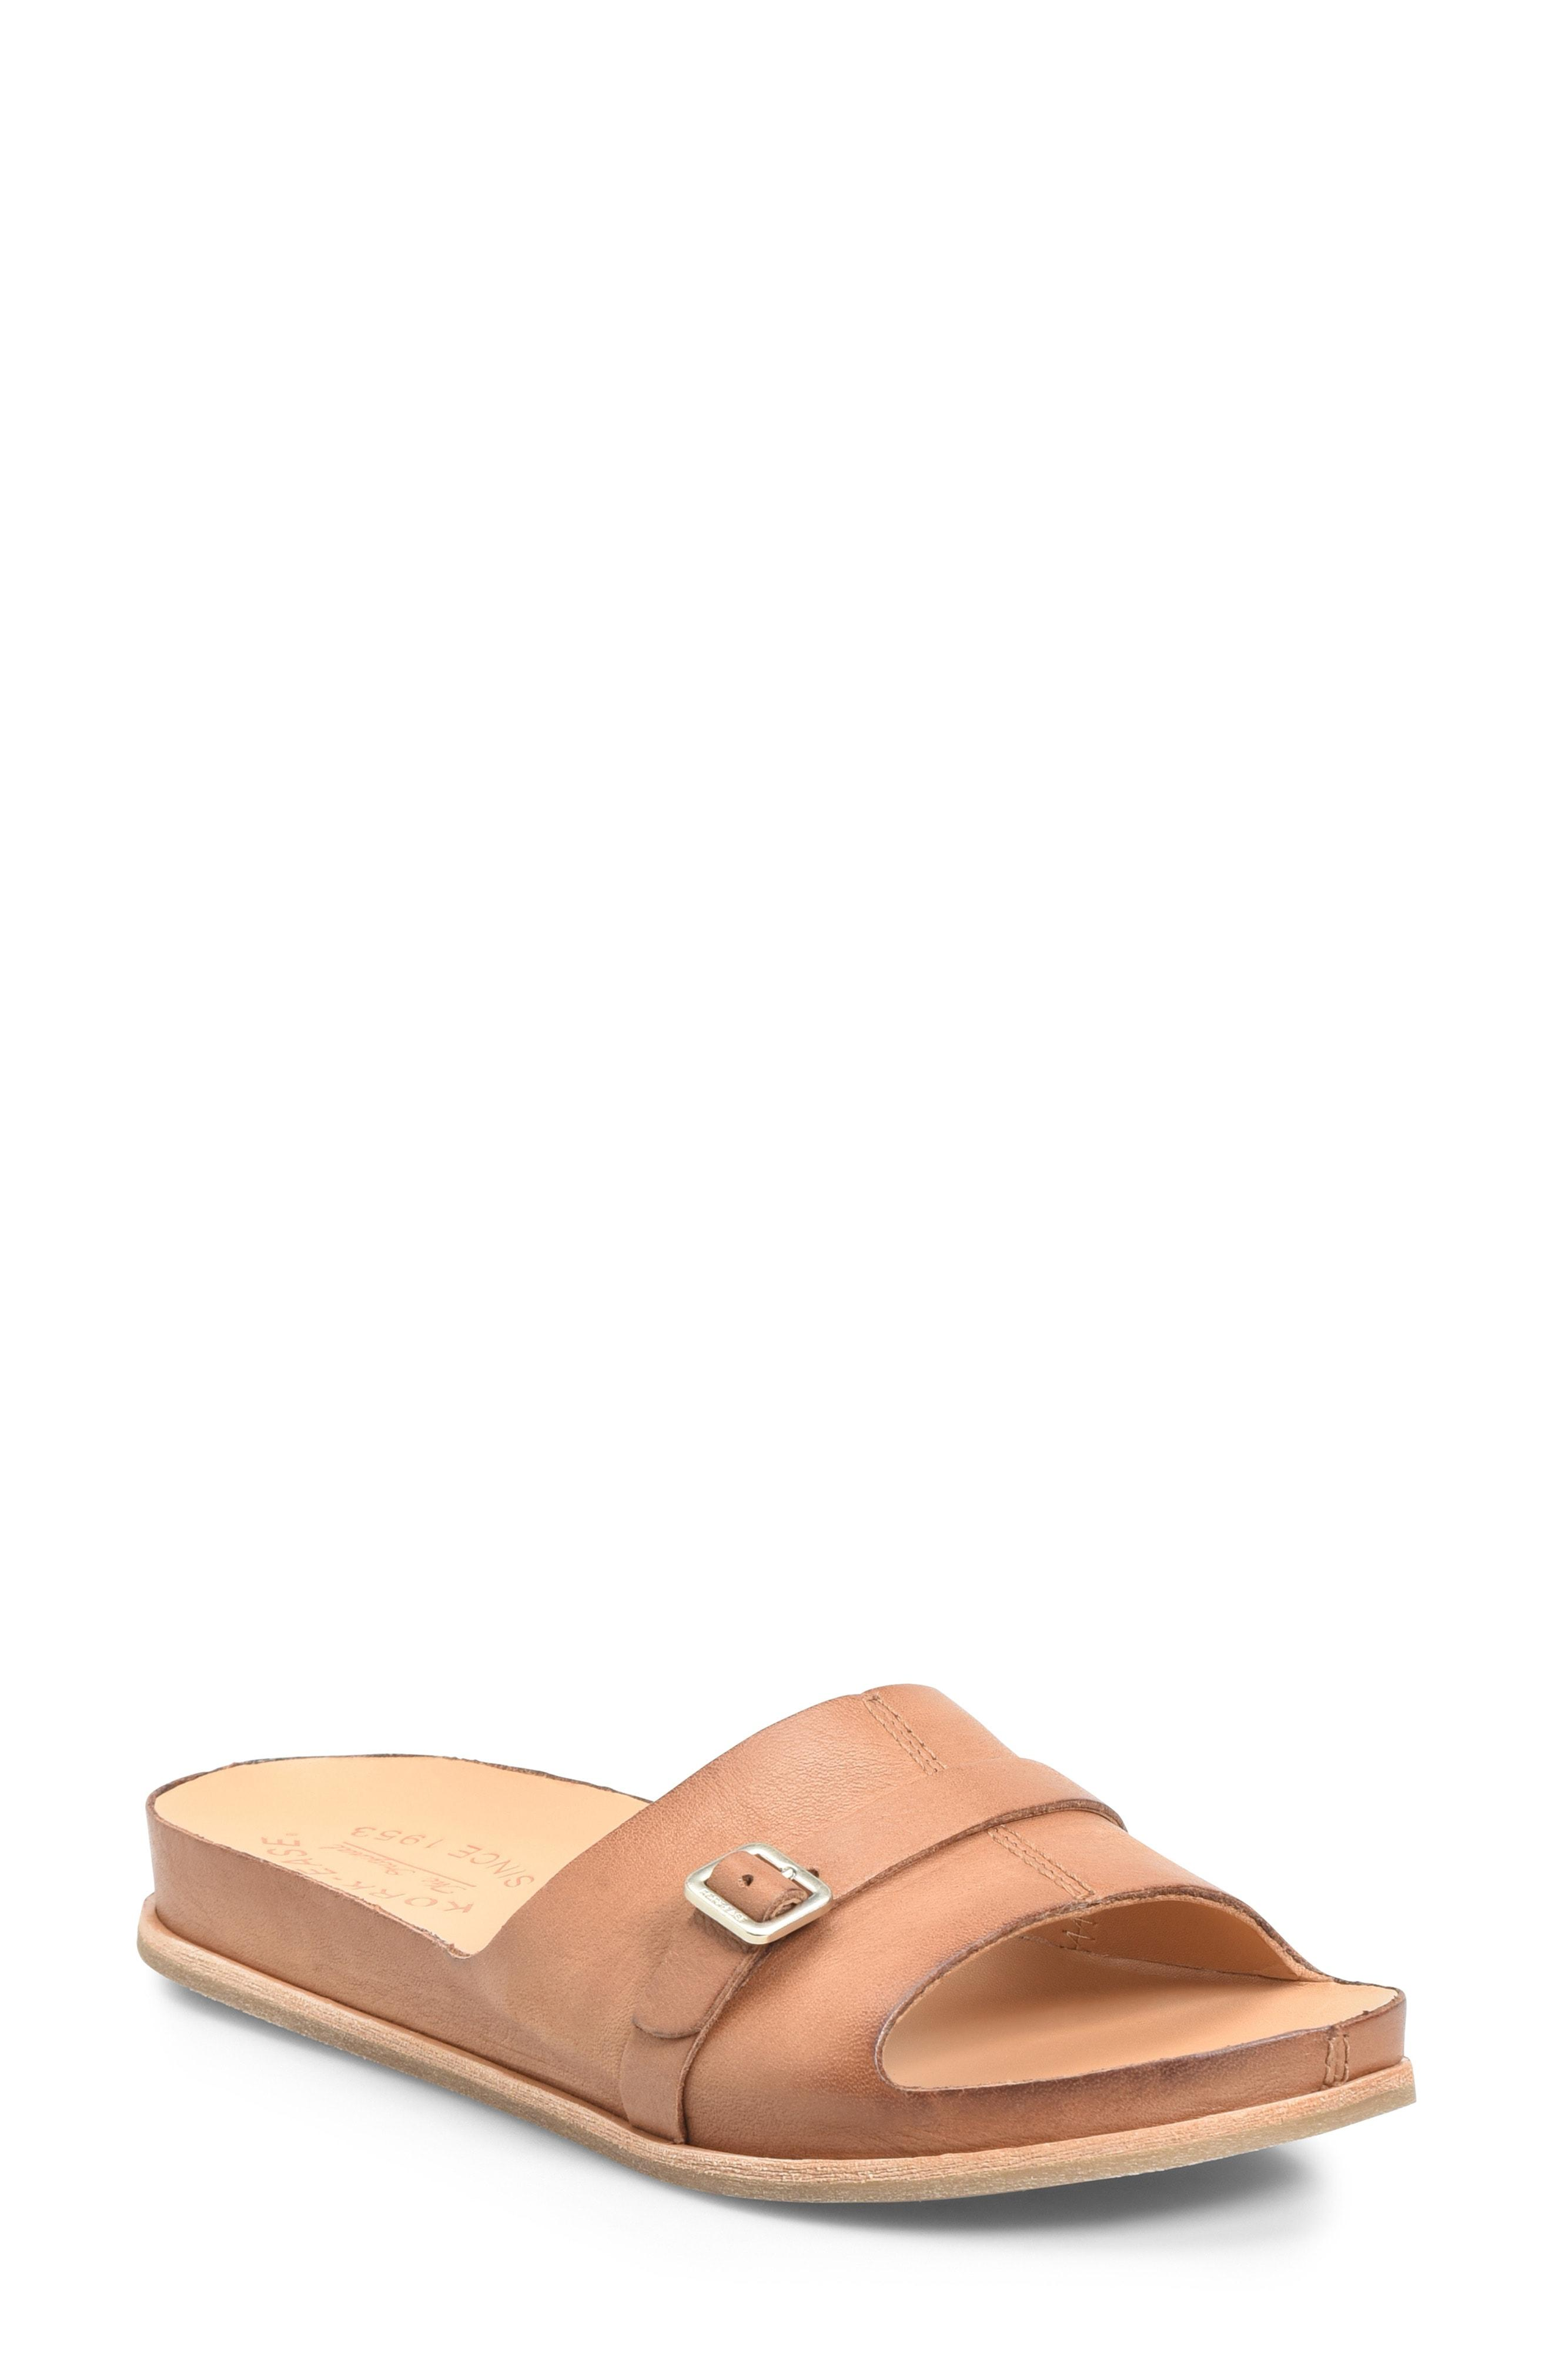 68ab9f329 Lyst - Kork-Ease Kork-ease Downey Slide Sandal in Brown